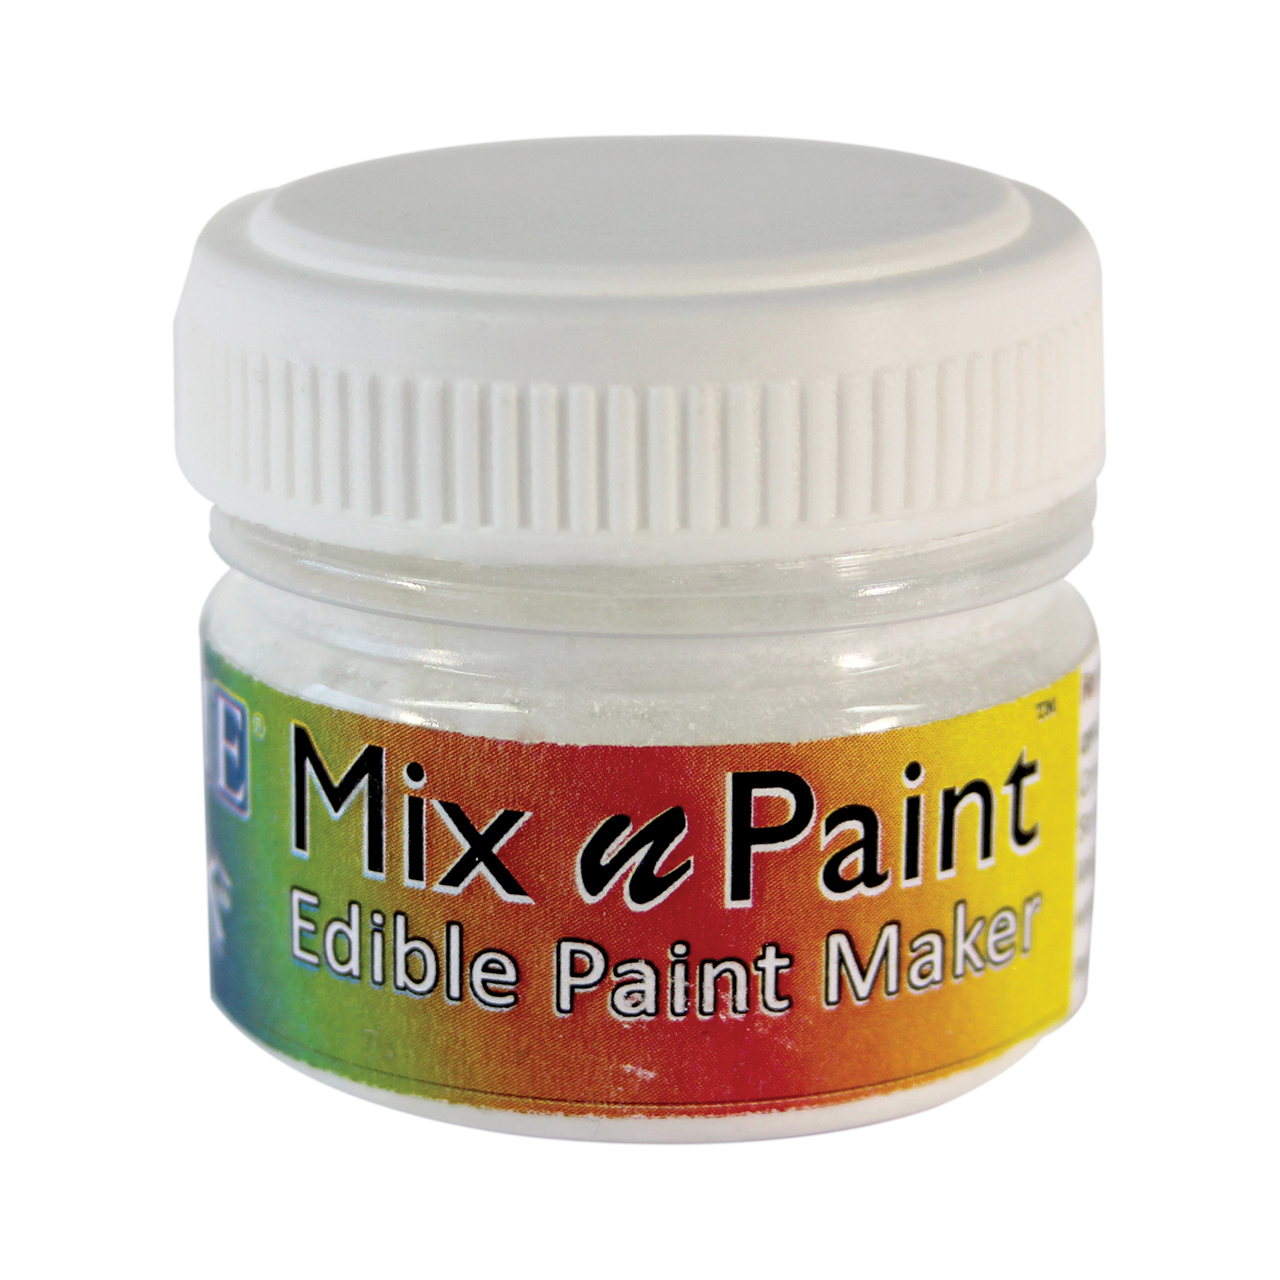 Image of Mixnpaint